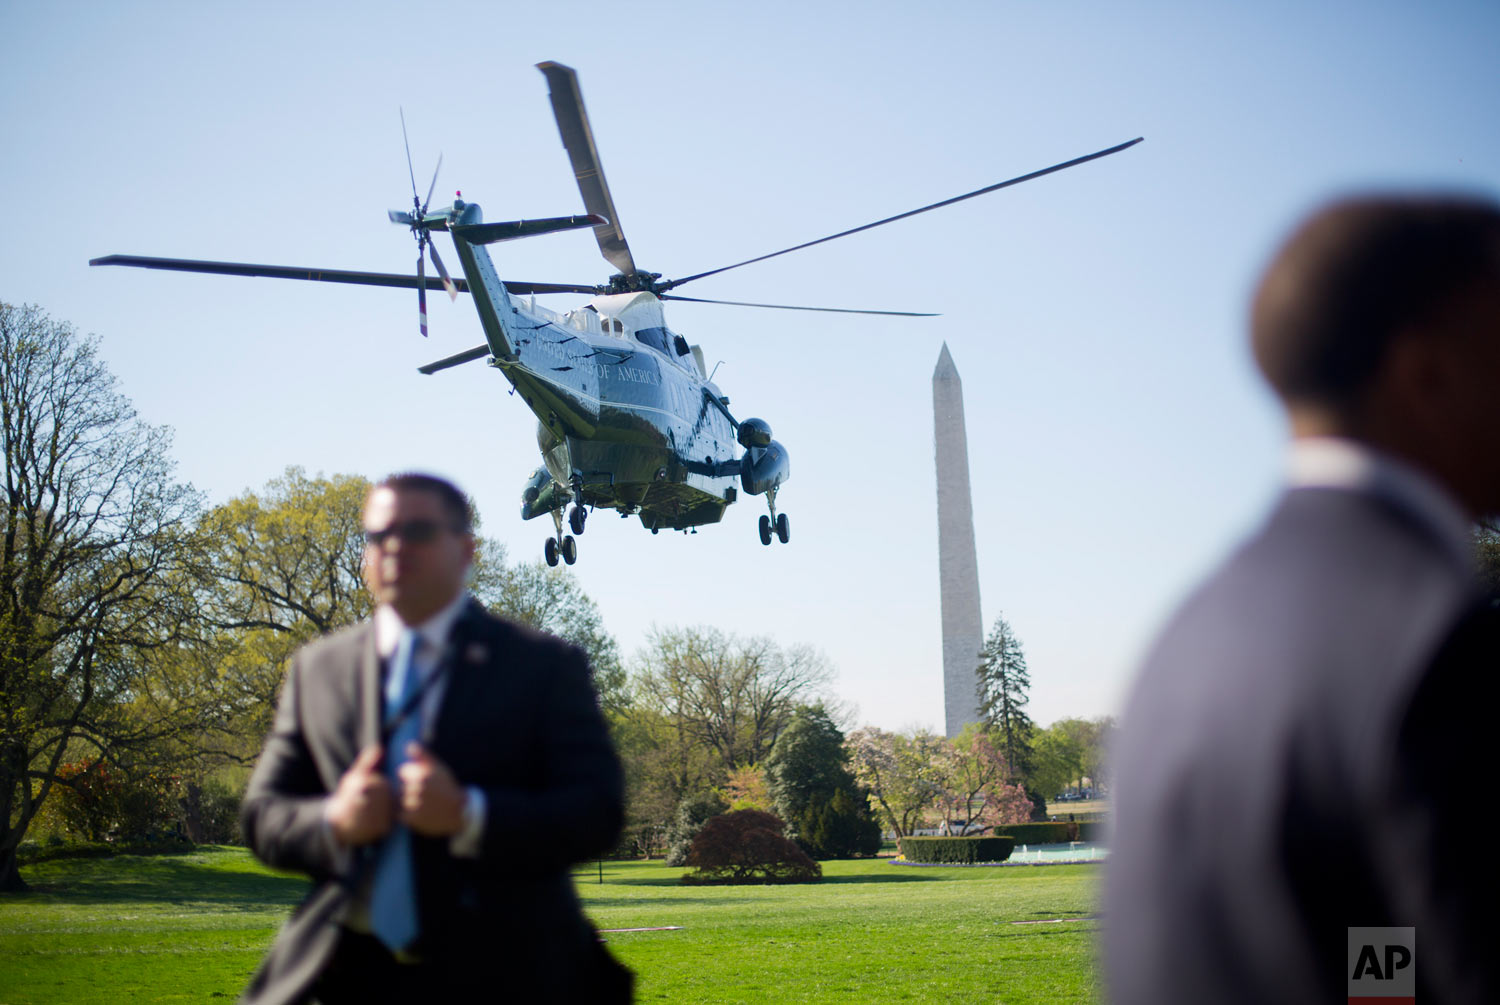 Members of the Secret Service stand on the South Lawn of the White House as Marine One helicopter, with President Donald Trump aboard, lifts off enroute to nearby Andrews Air Force Base, Md., for a trip to Texas, April 10, 2019. (AP Photo/Pablo Martinez Monsivais)